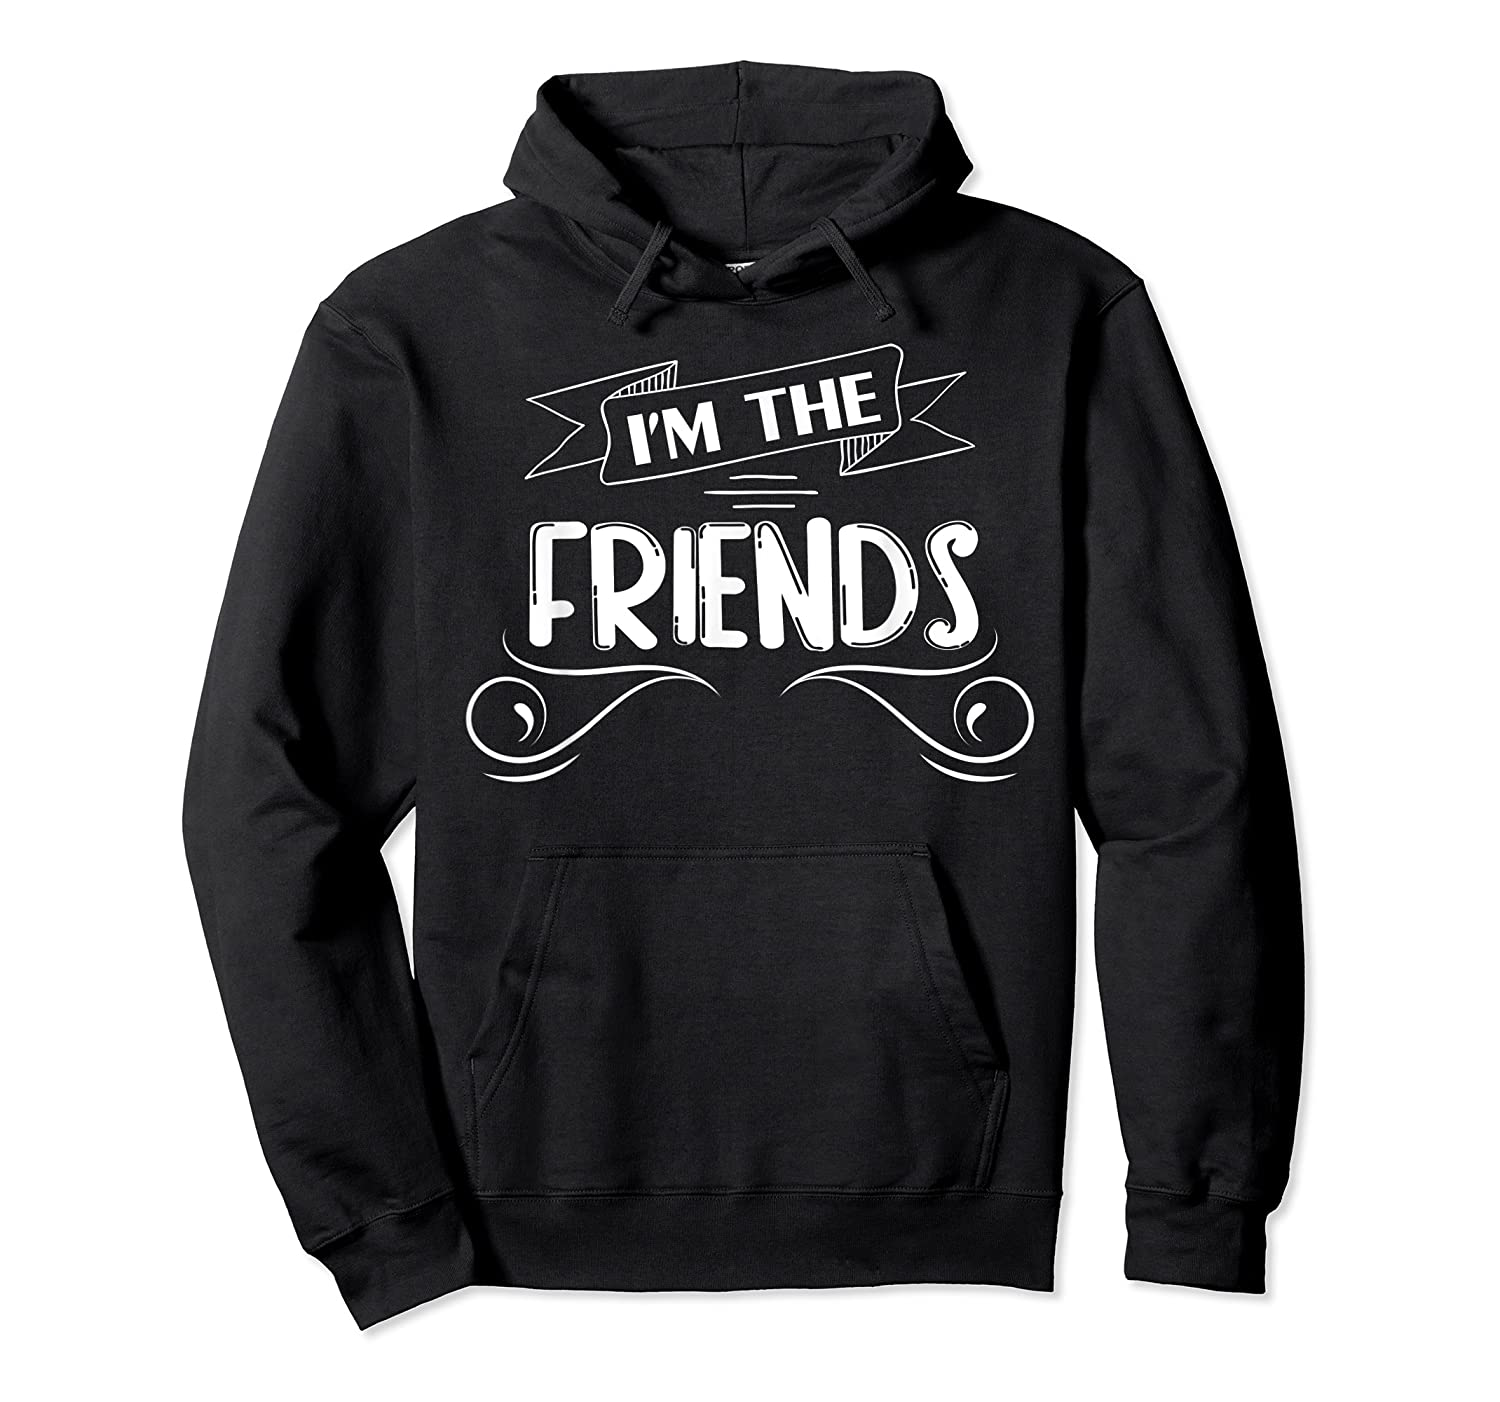 If Drunk Or Lost Return To My Friend Matching Shirts Unisex Pullover Hoodie